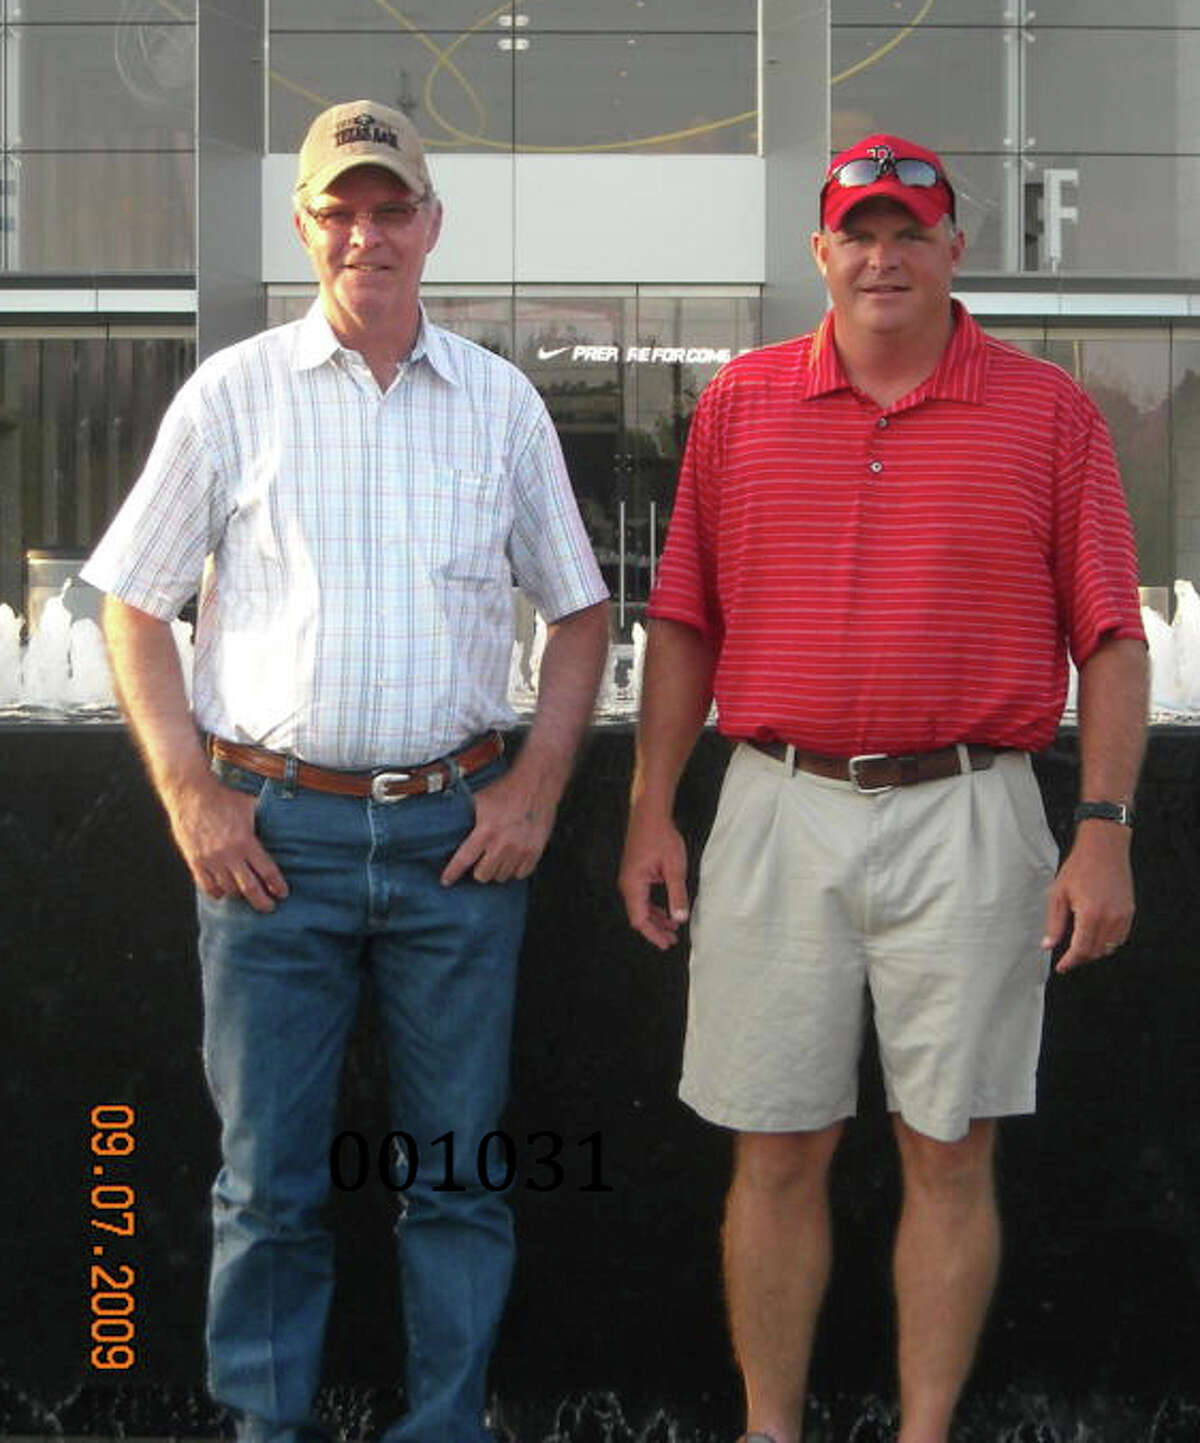 Douglas Hudson, left in white, with his son, Cade Hudson, who is a plaintiff in the wrongful death suit about his father's heat death at the Gurney Unit in July 2011.